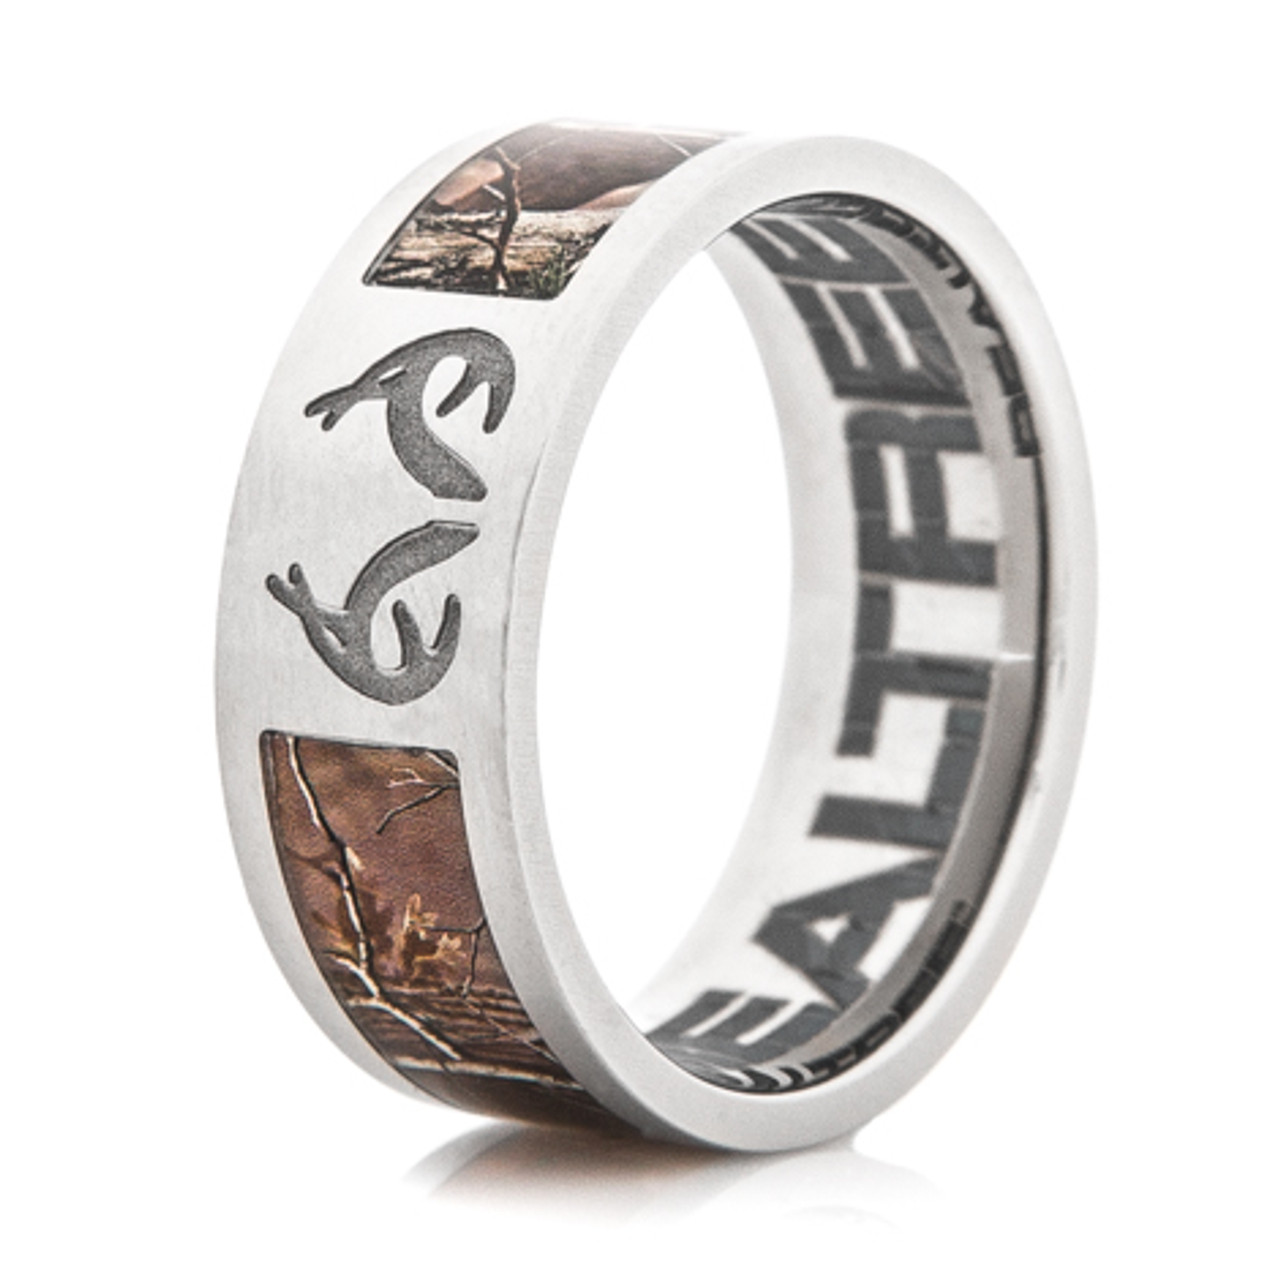 002a78d7bc650 Men's Titanium Realtree® Camo Ring with Engraved Antlers